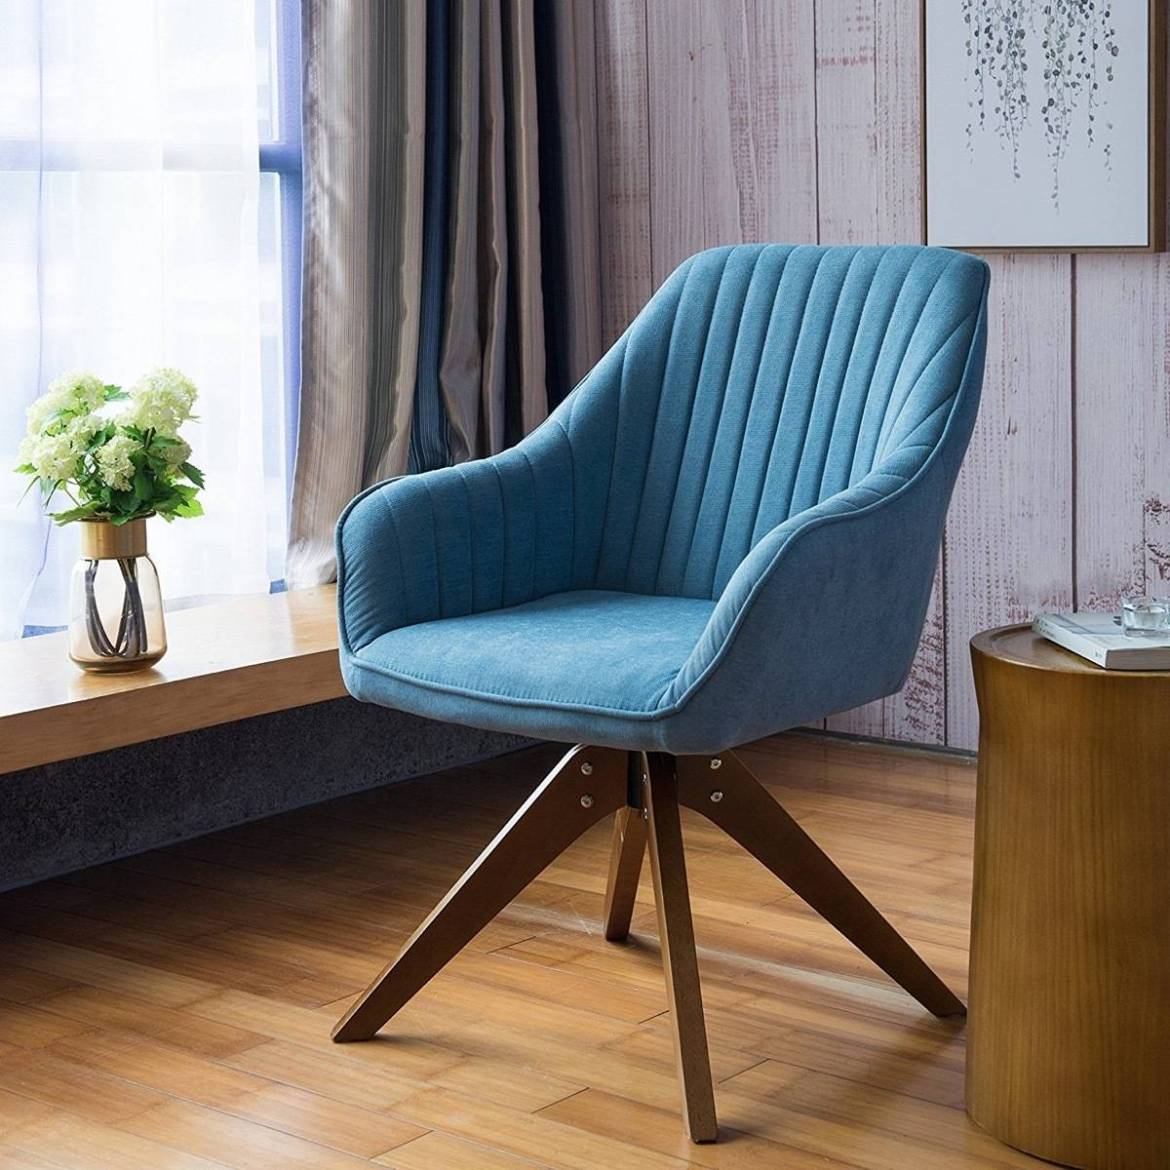 Accent club chair with arms - Amazon